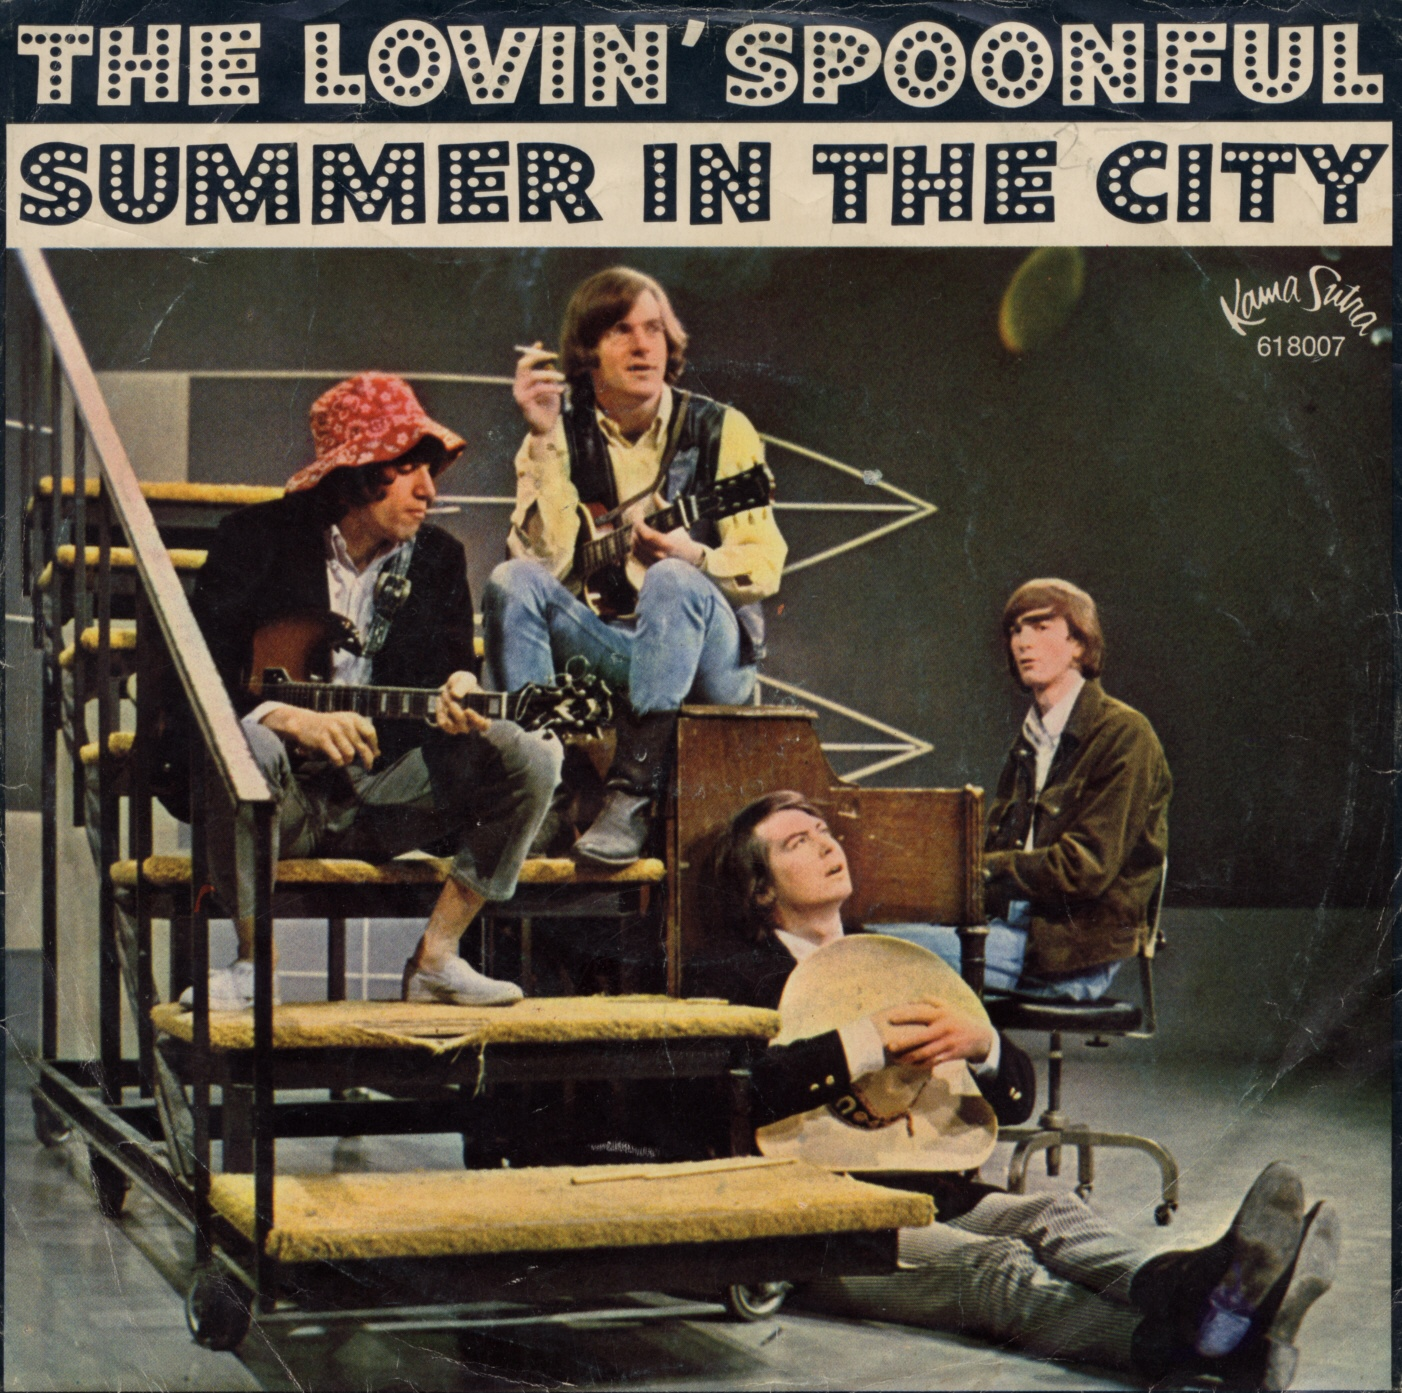 Cover: Summer in the city, The Lovin' Spoonful